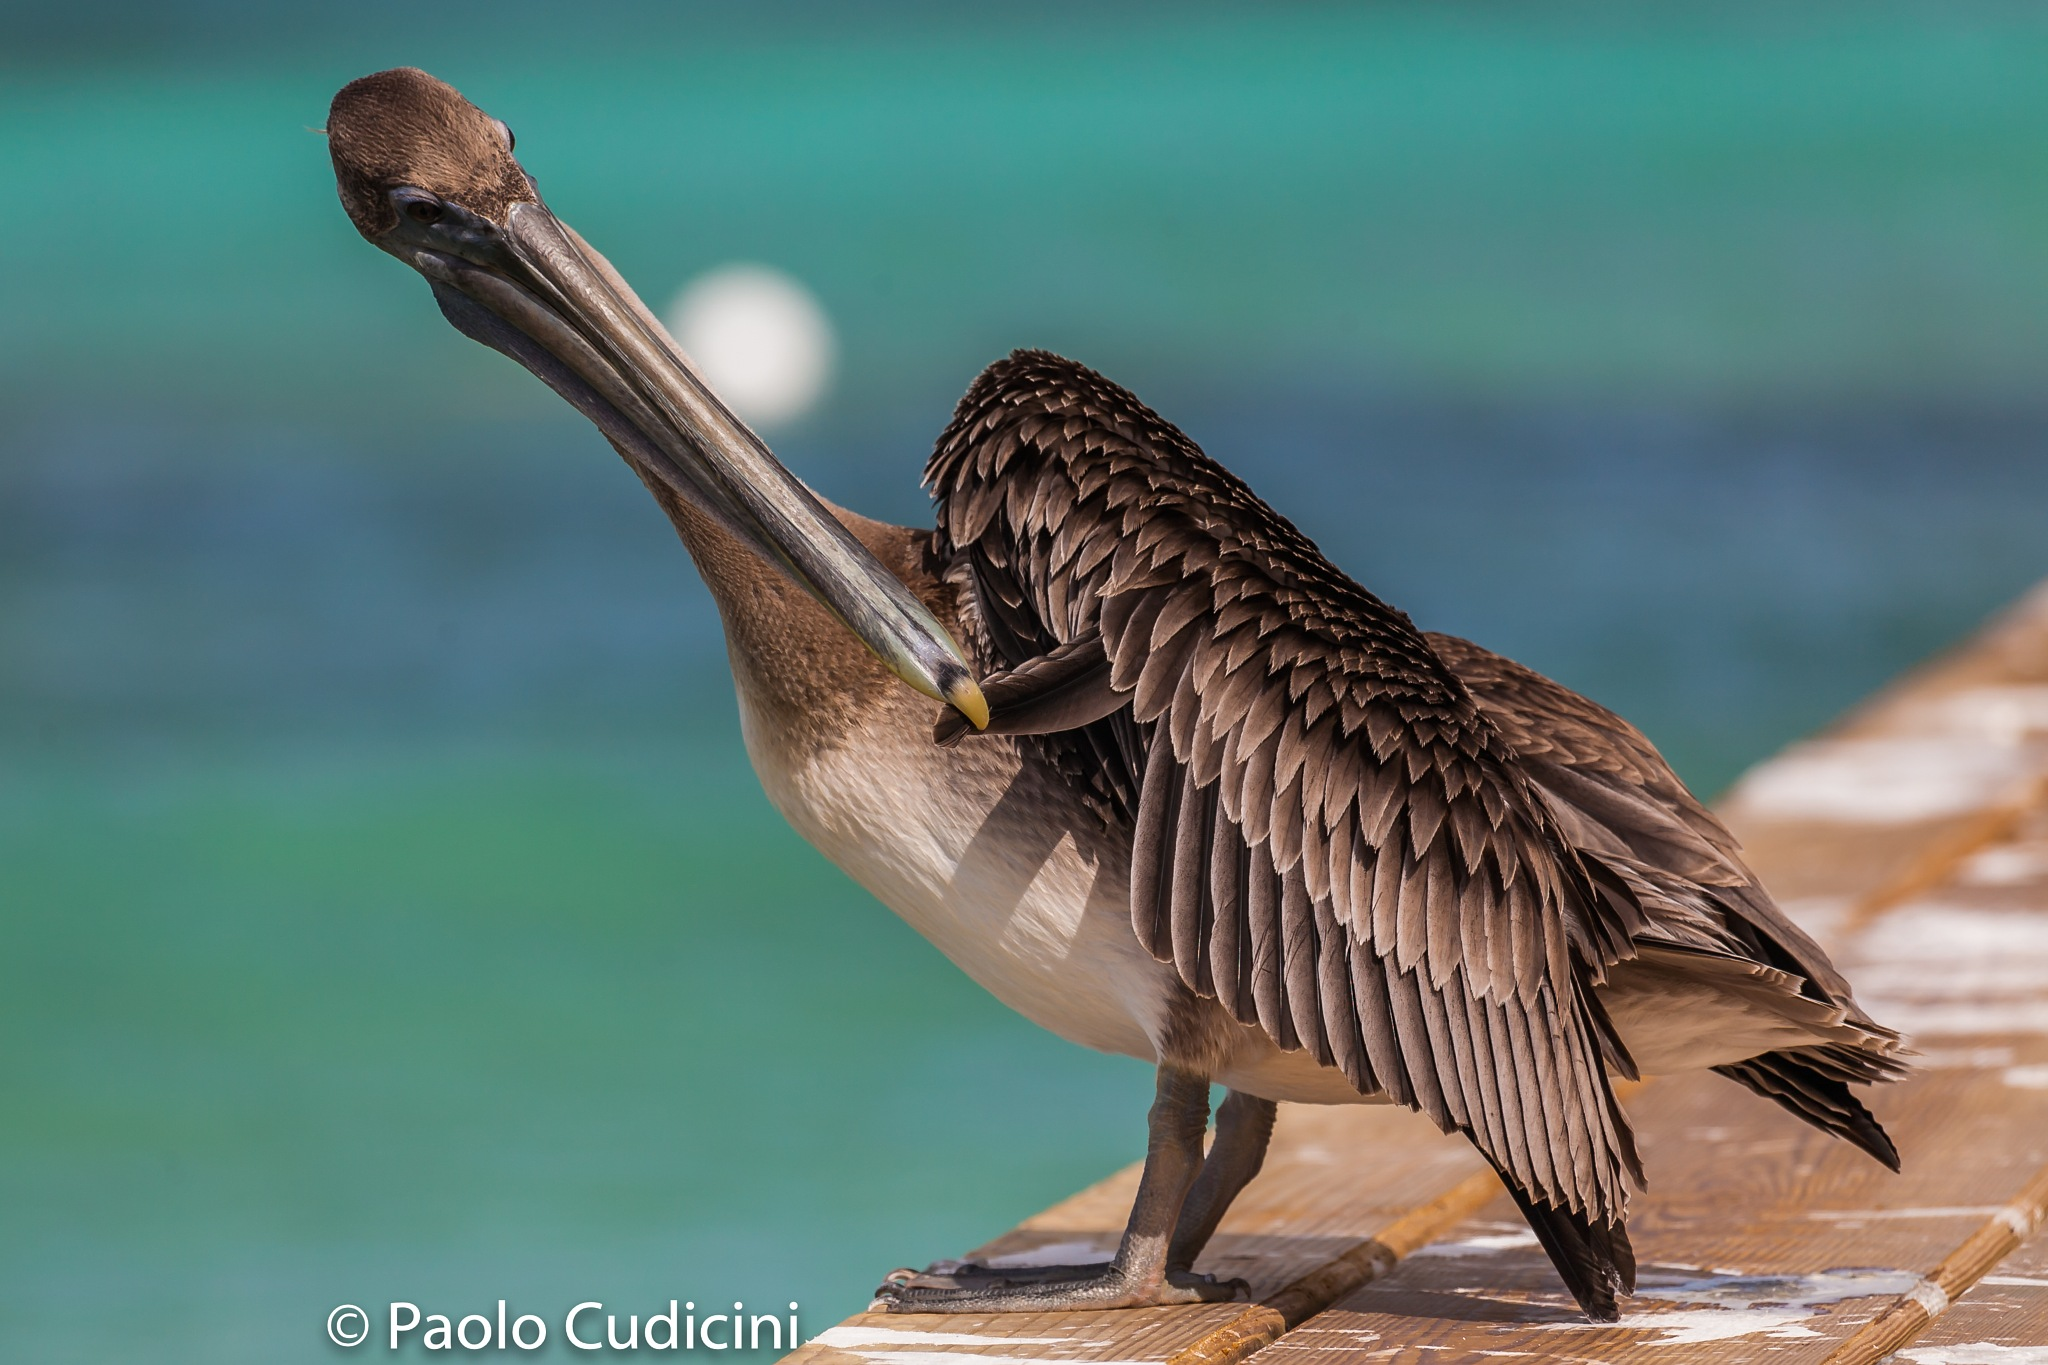 The perfect plumage by Paolo Cudicini